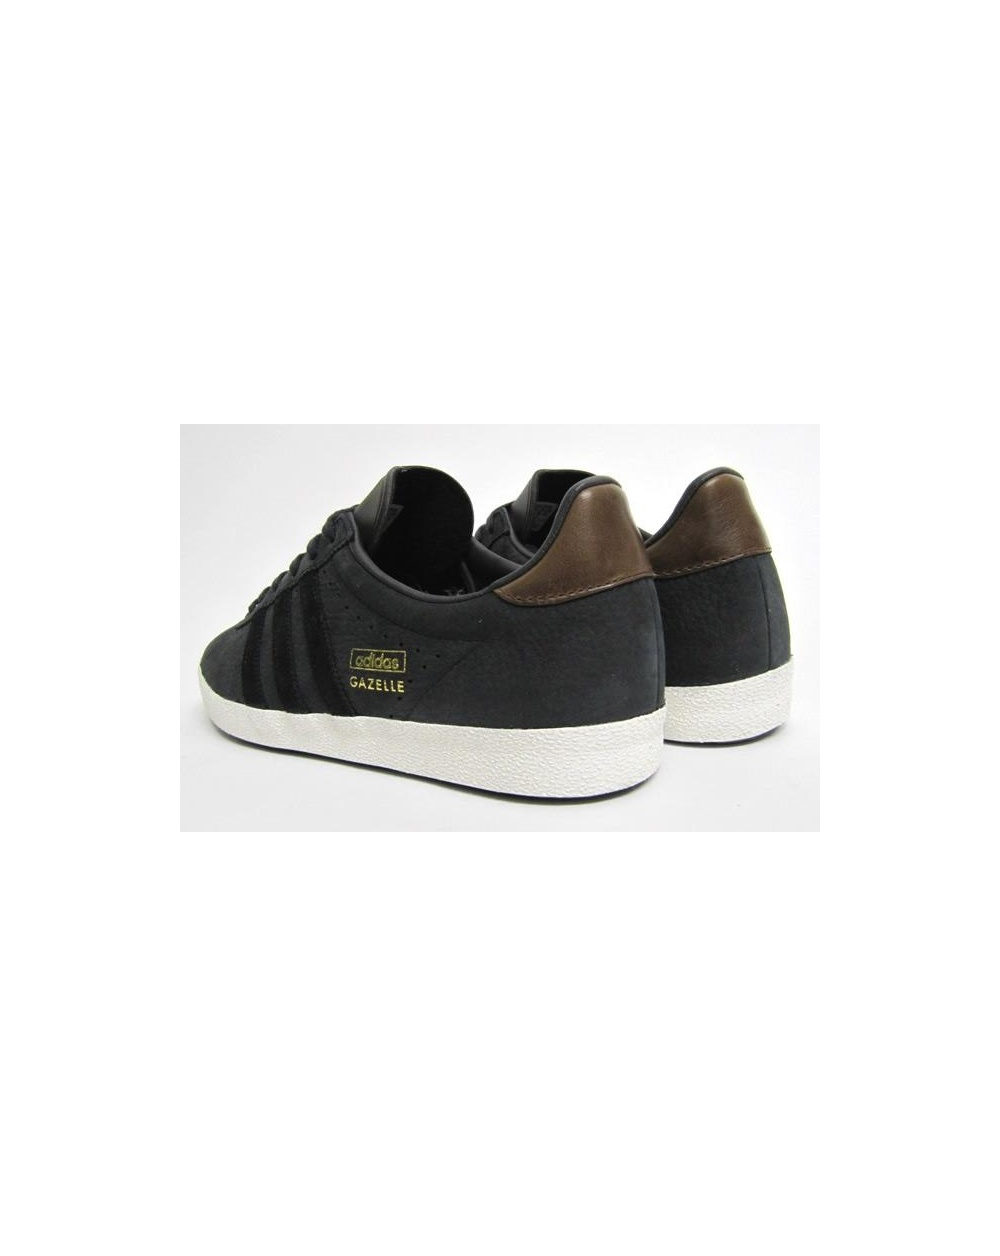 mens adidas gazelle black leather